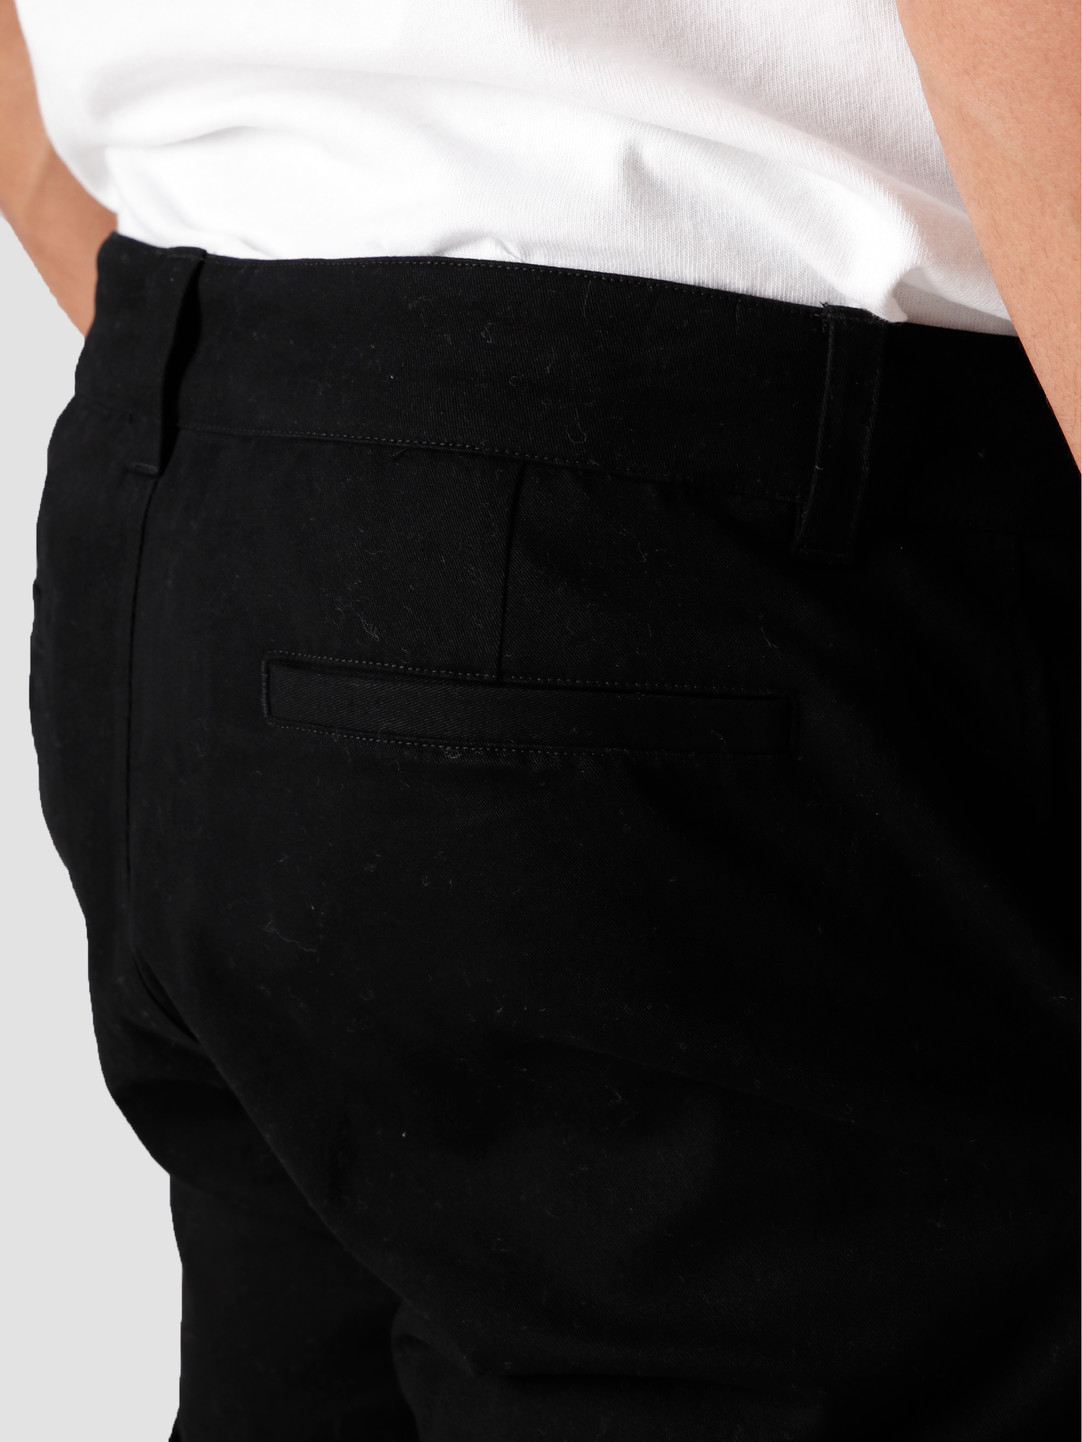 Olaf Hussein Olaf Hussein OH Cargo Pants Black